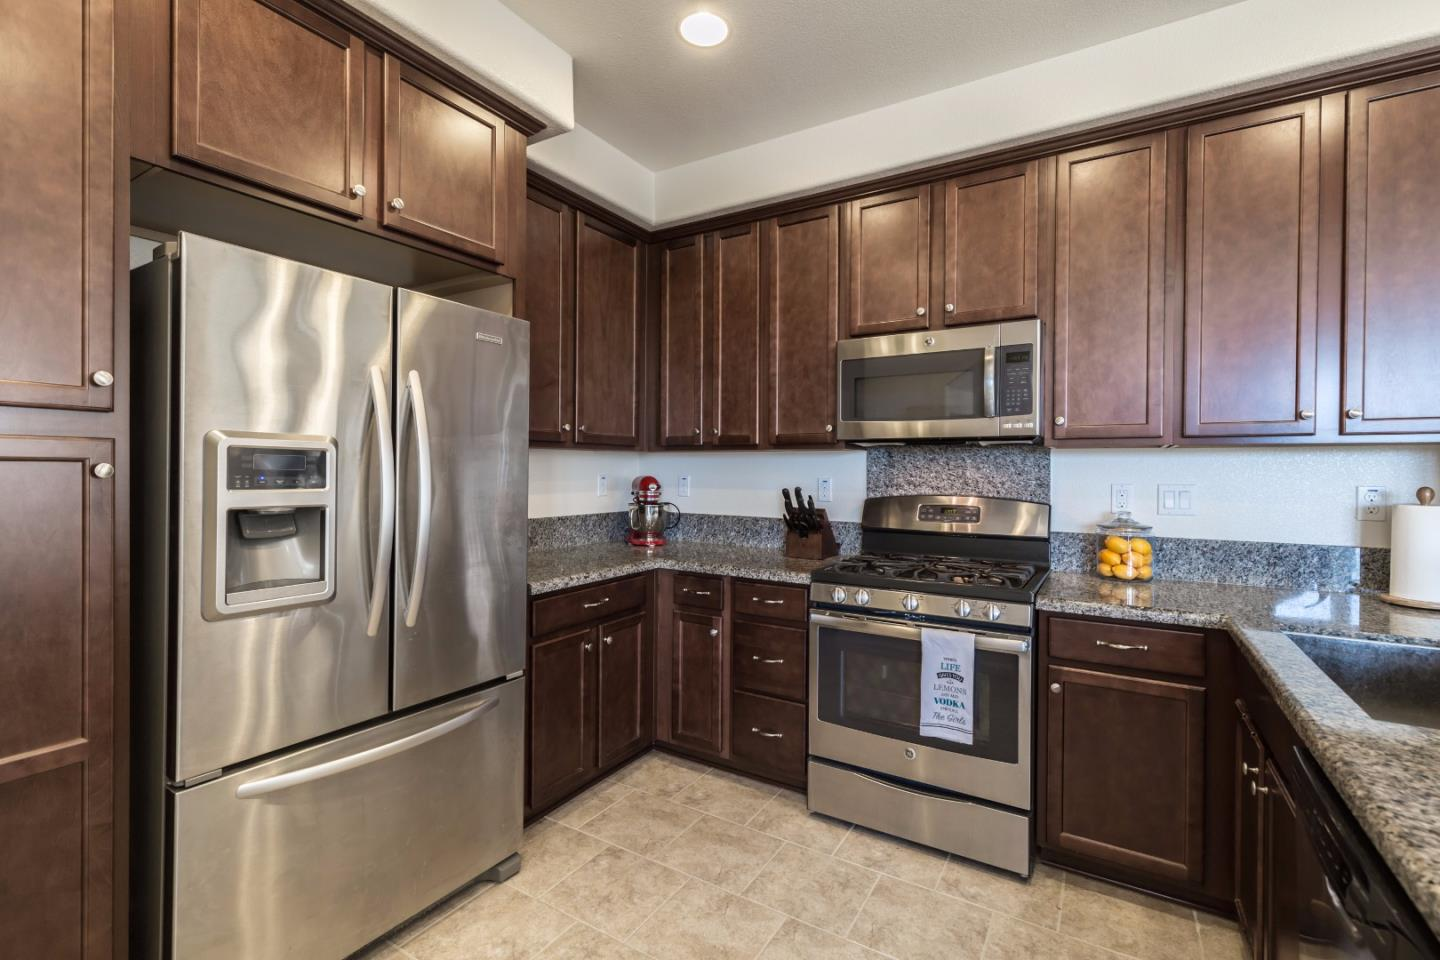 Additional photo for property listing at 1590 McCandless Drive  Milpitas, Kalifornien 95035 Vereinigte Staaten